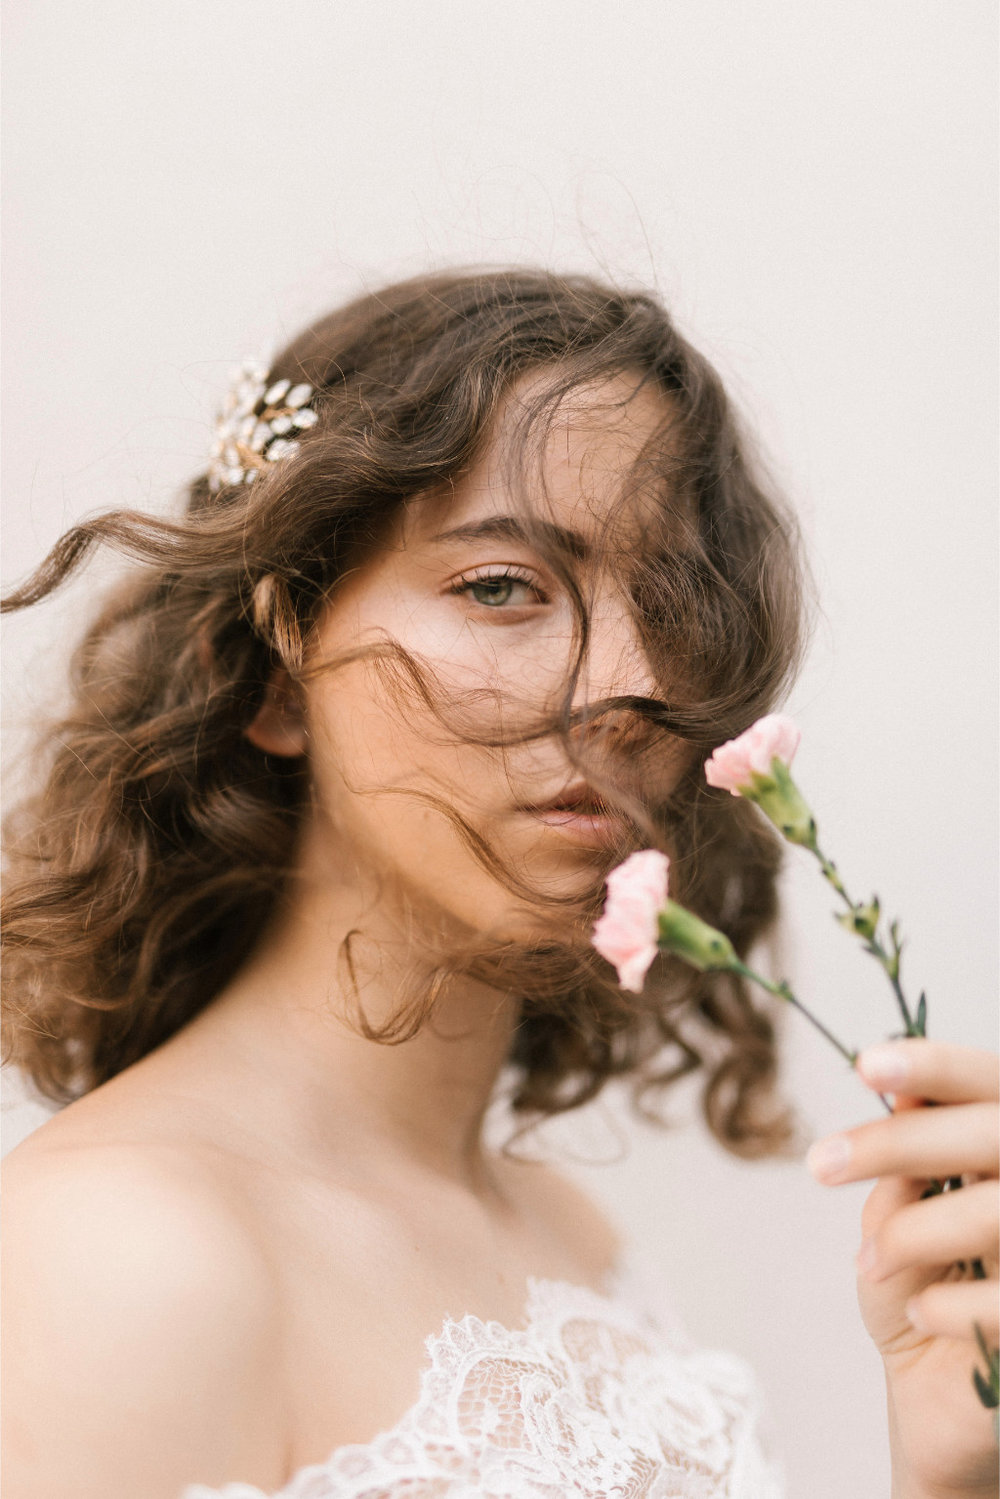 Jenna Comb| Fleur Romance - Modern bridal hair accessories and jewellery